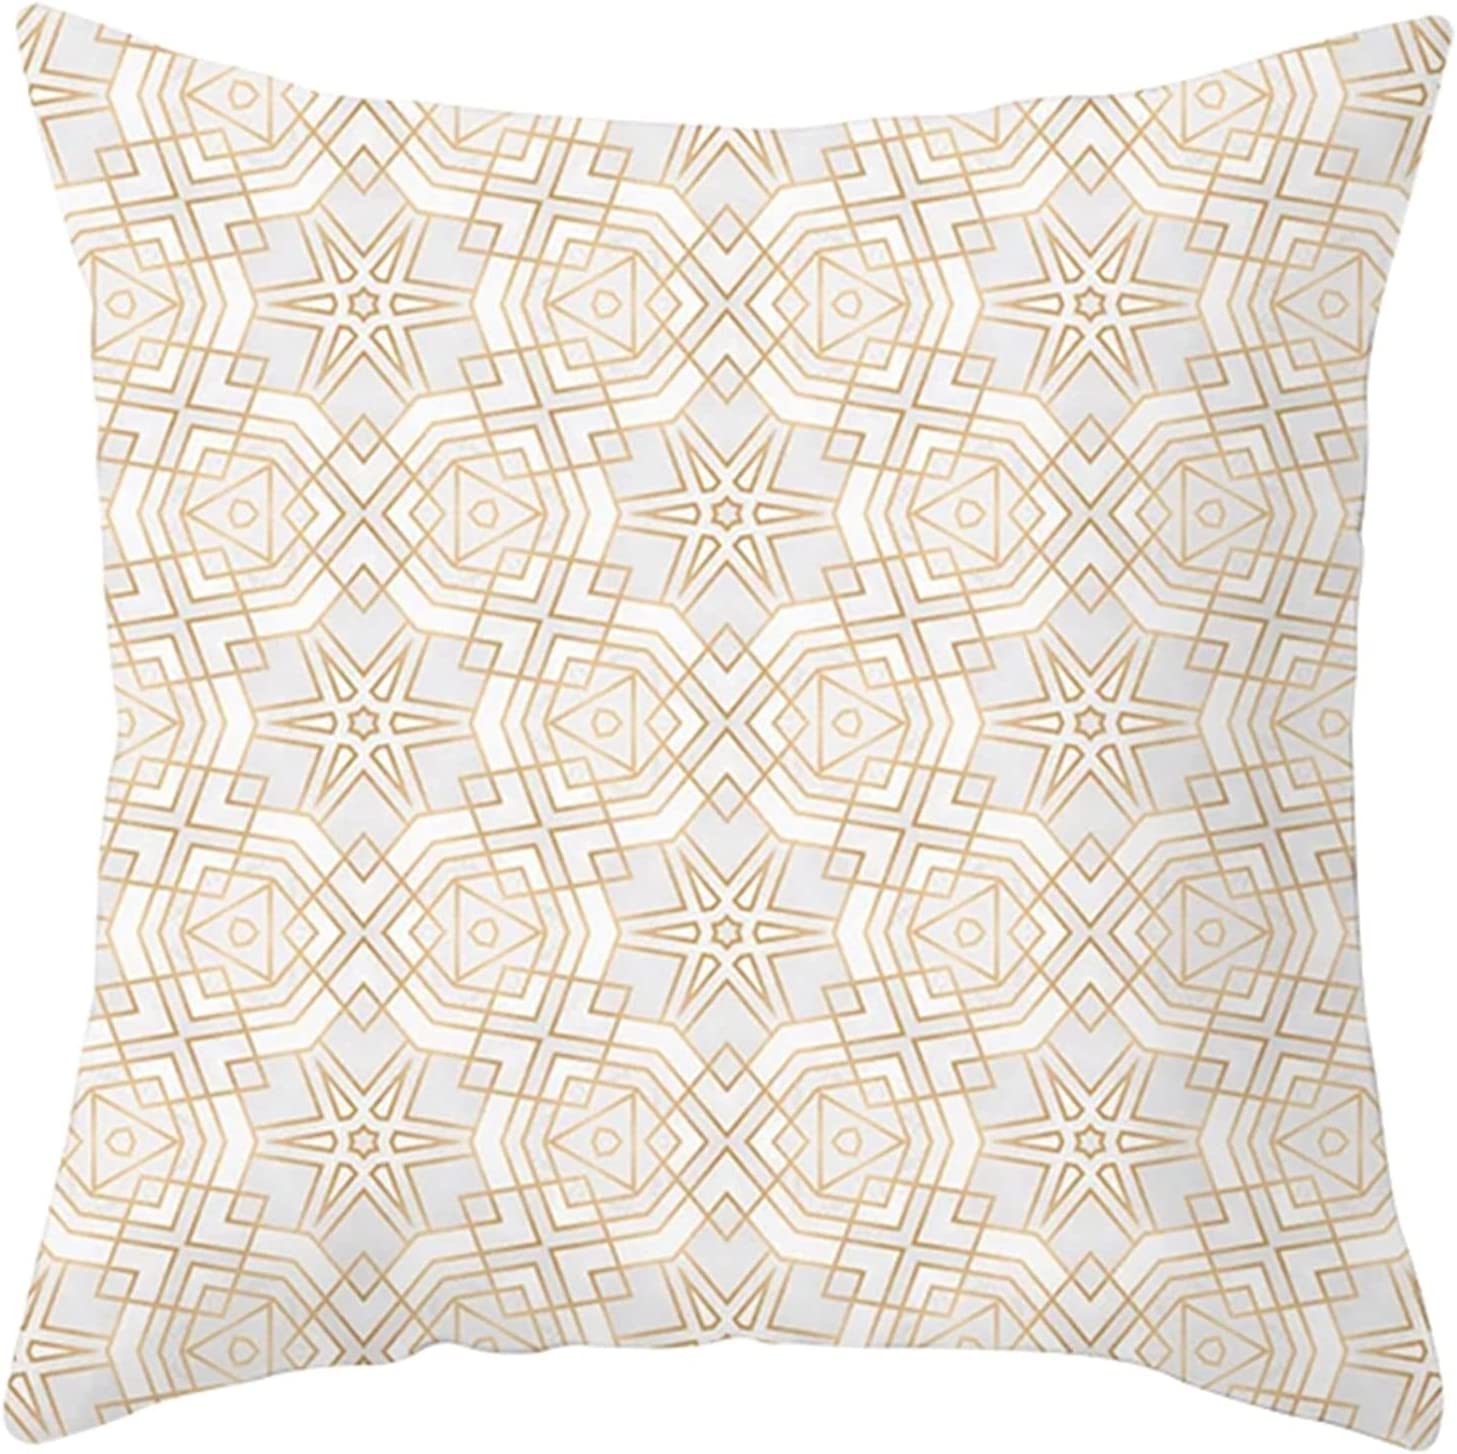 Daesar Decorative overseas Pillow Covers Directly managed store Pillowcases Thr Bed Beige White